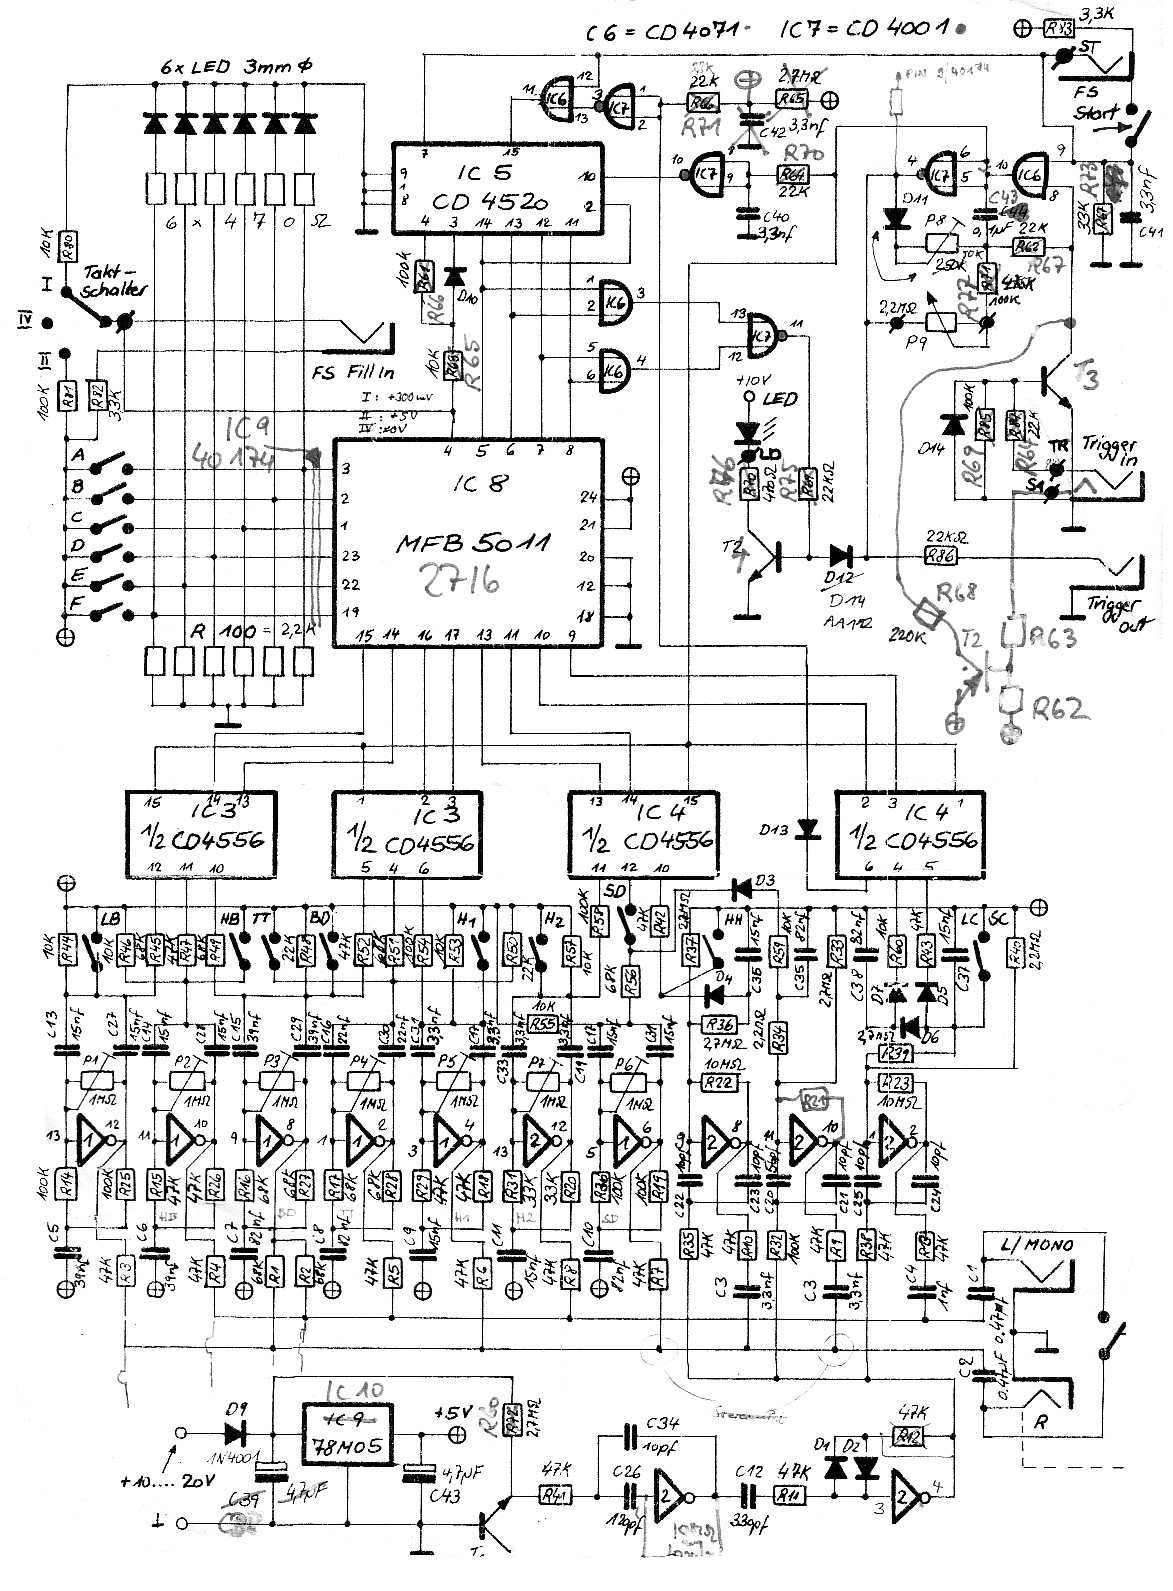 Schema Elettrico Yamaha R : Synthesizer service manuals free download